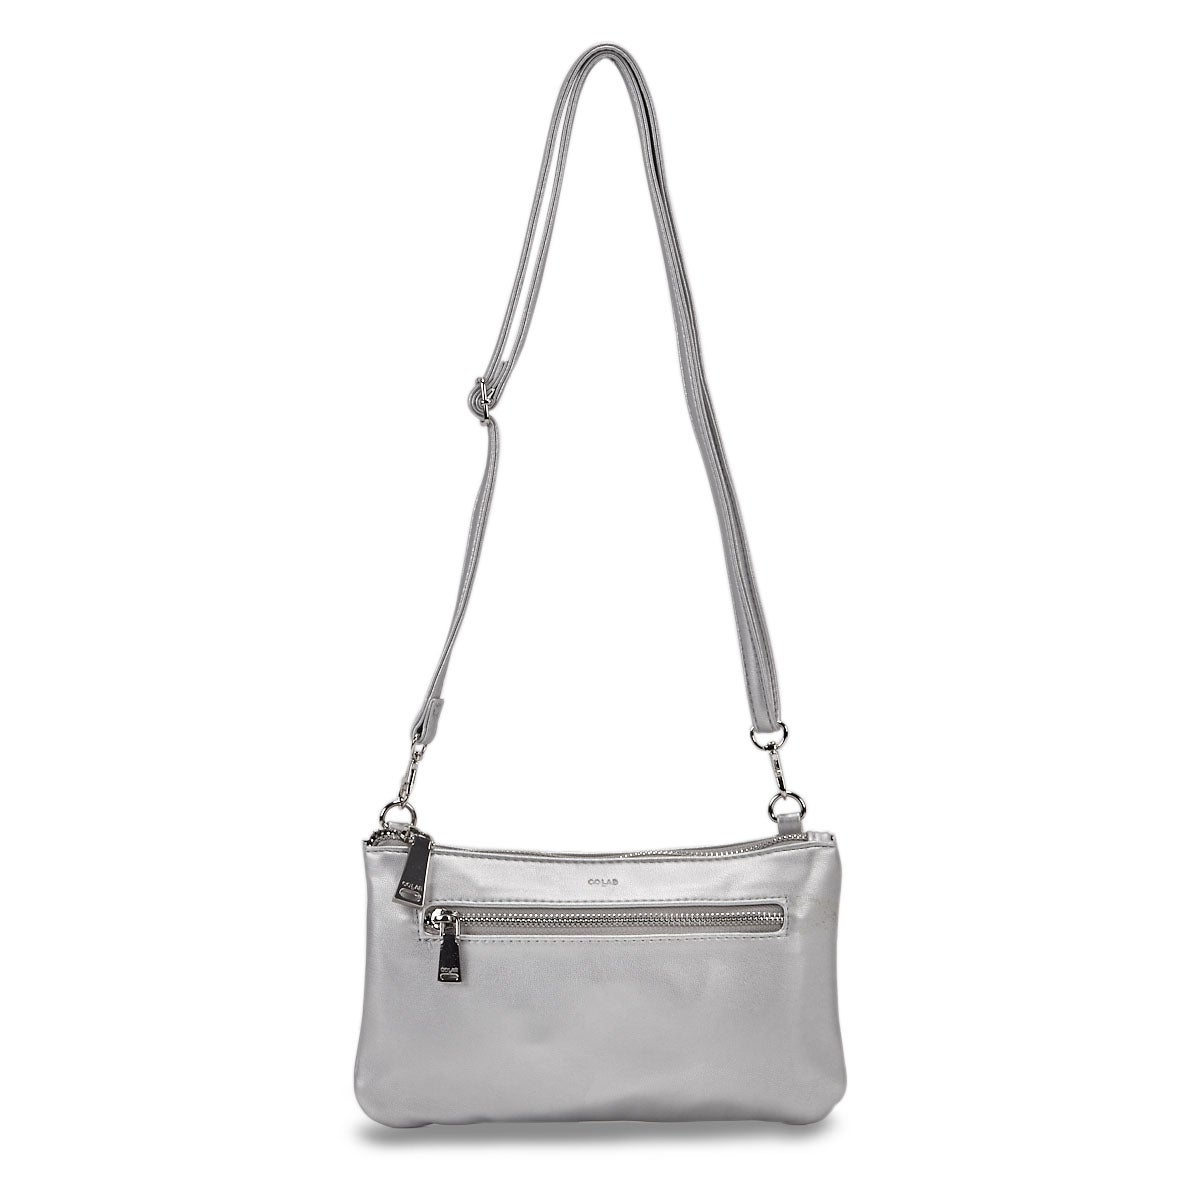 Lds Rock and Chain slvr cross body bag